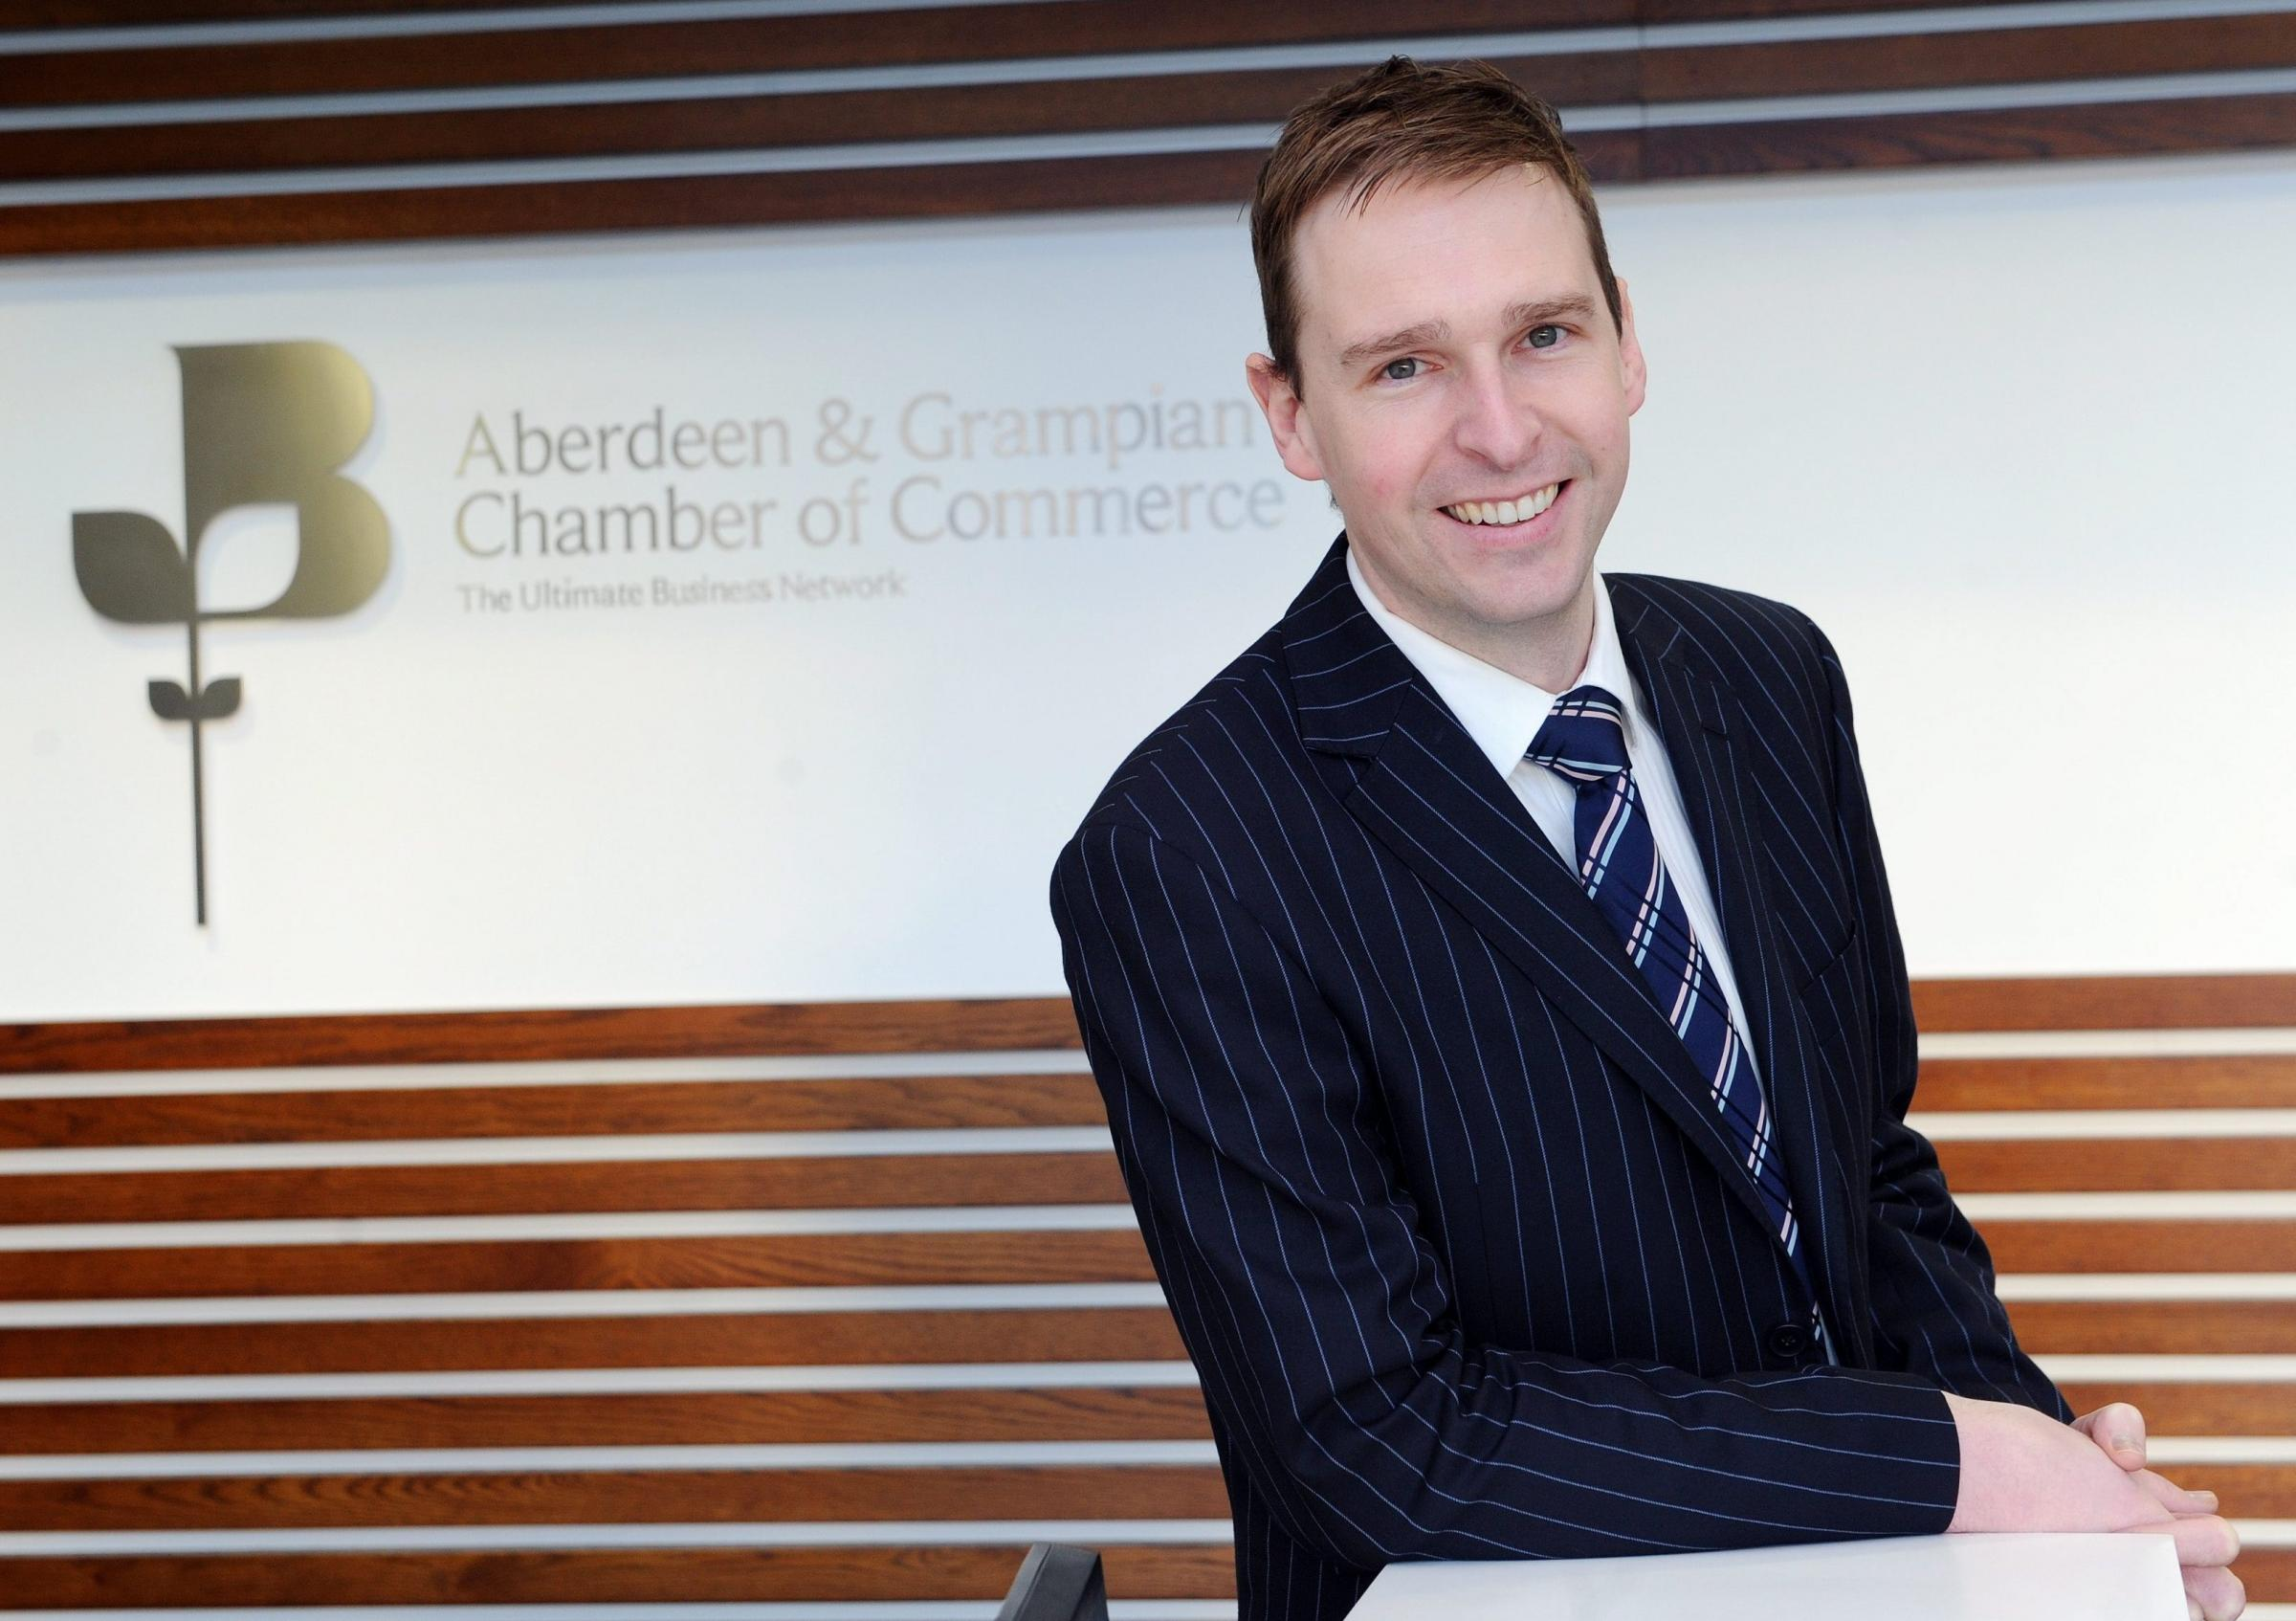 James Bream of Aberdeen and Grampian Chamber of Commerce